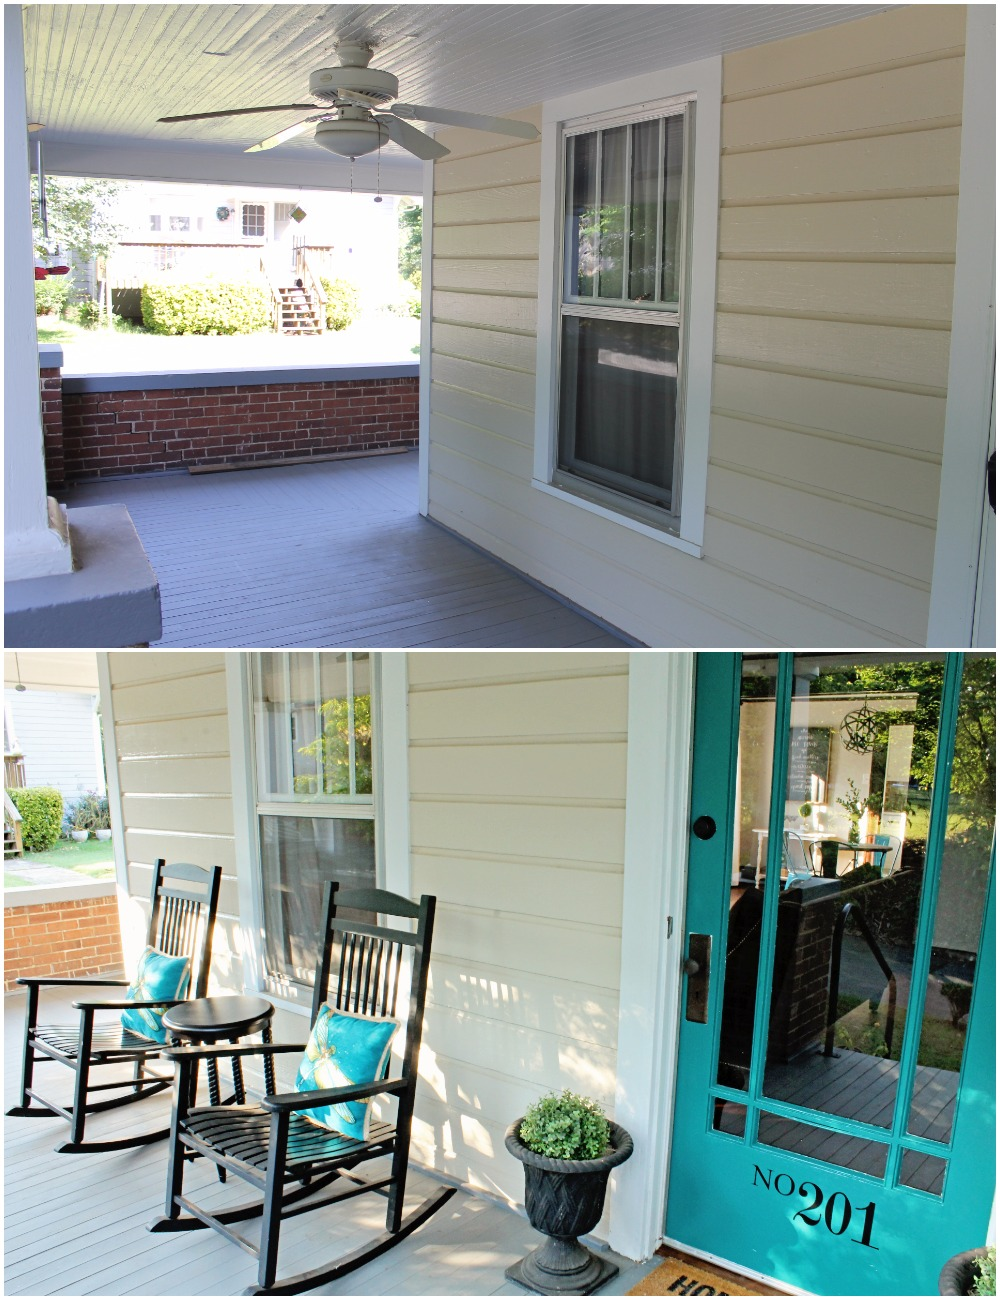 House Flipping Before and Afters - Curb Appeal and Backyard on a Budget DIY (6).jpg